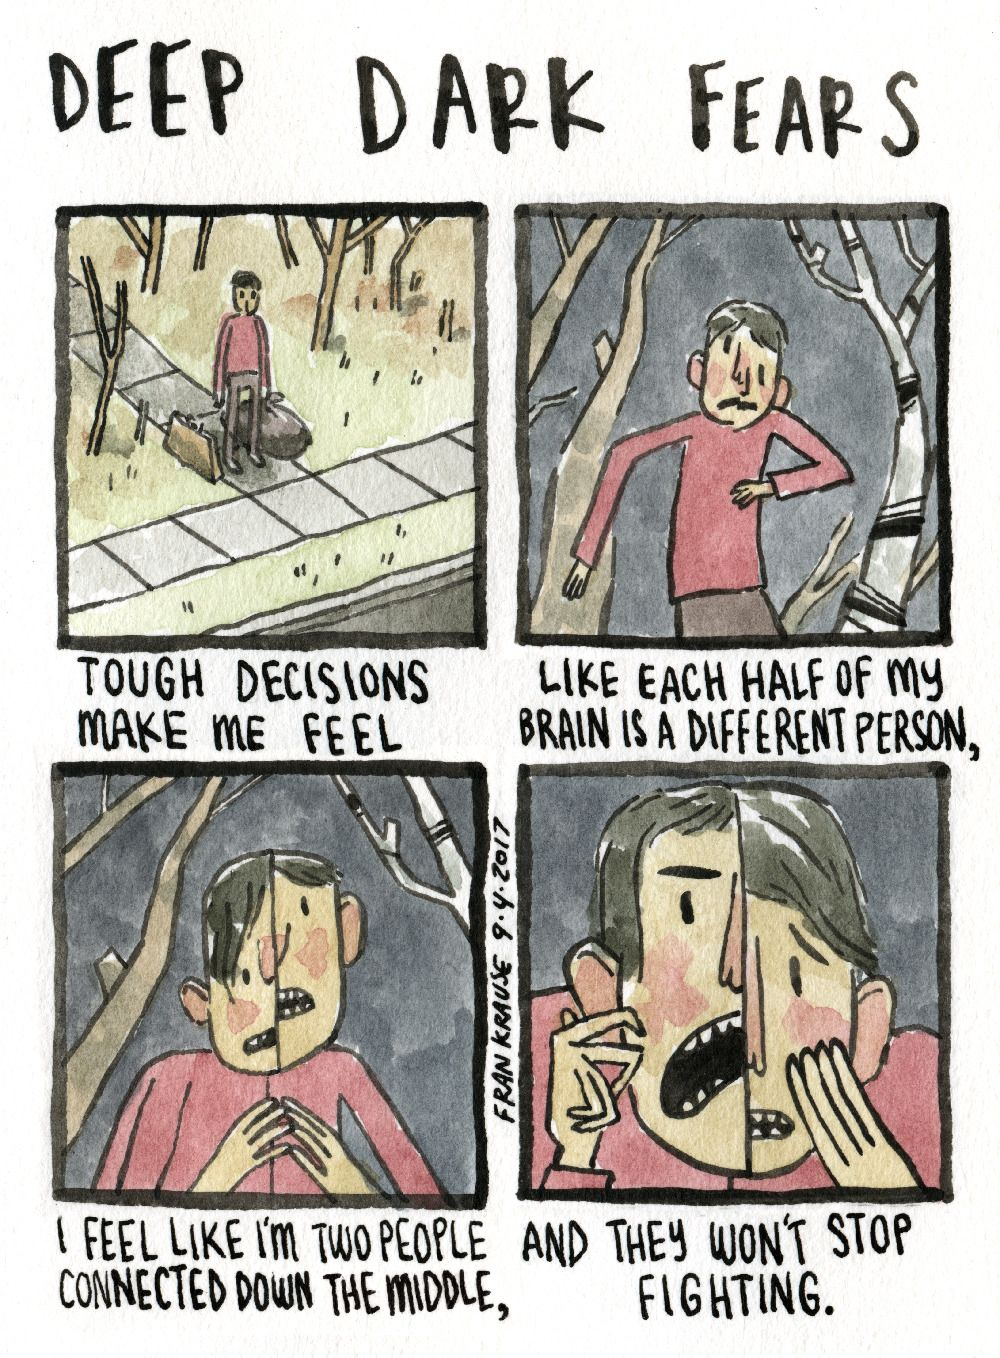 Face to face a fear submitted by tyler to deep dark fears